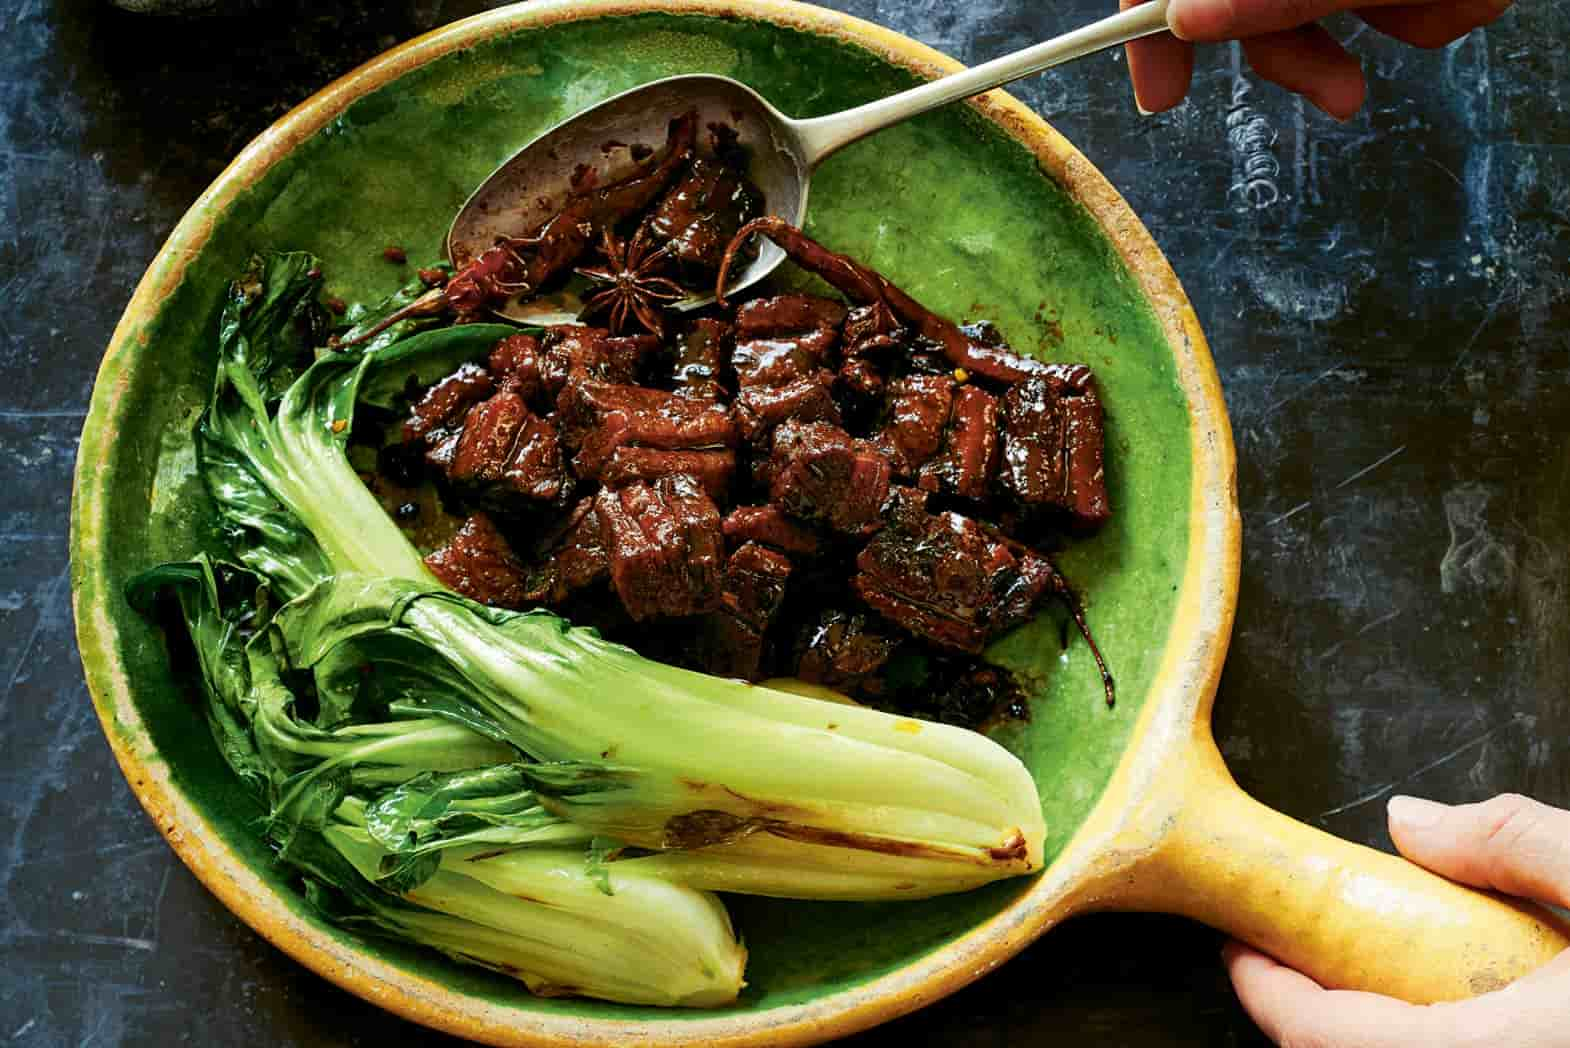 recipe for Ching-He Huang's Braised Hong Sao Pork